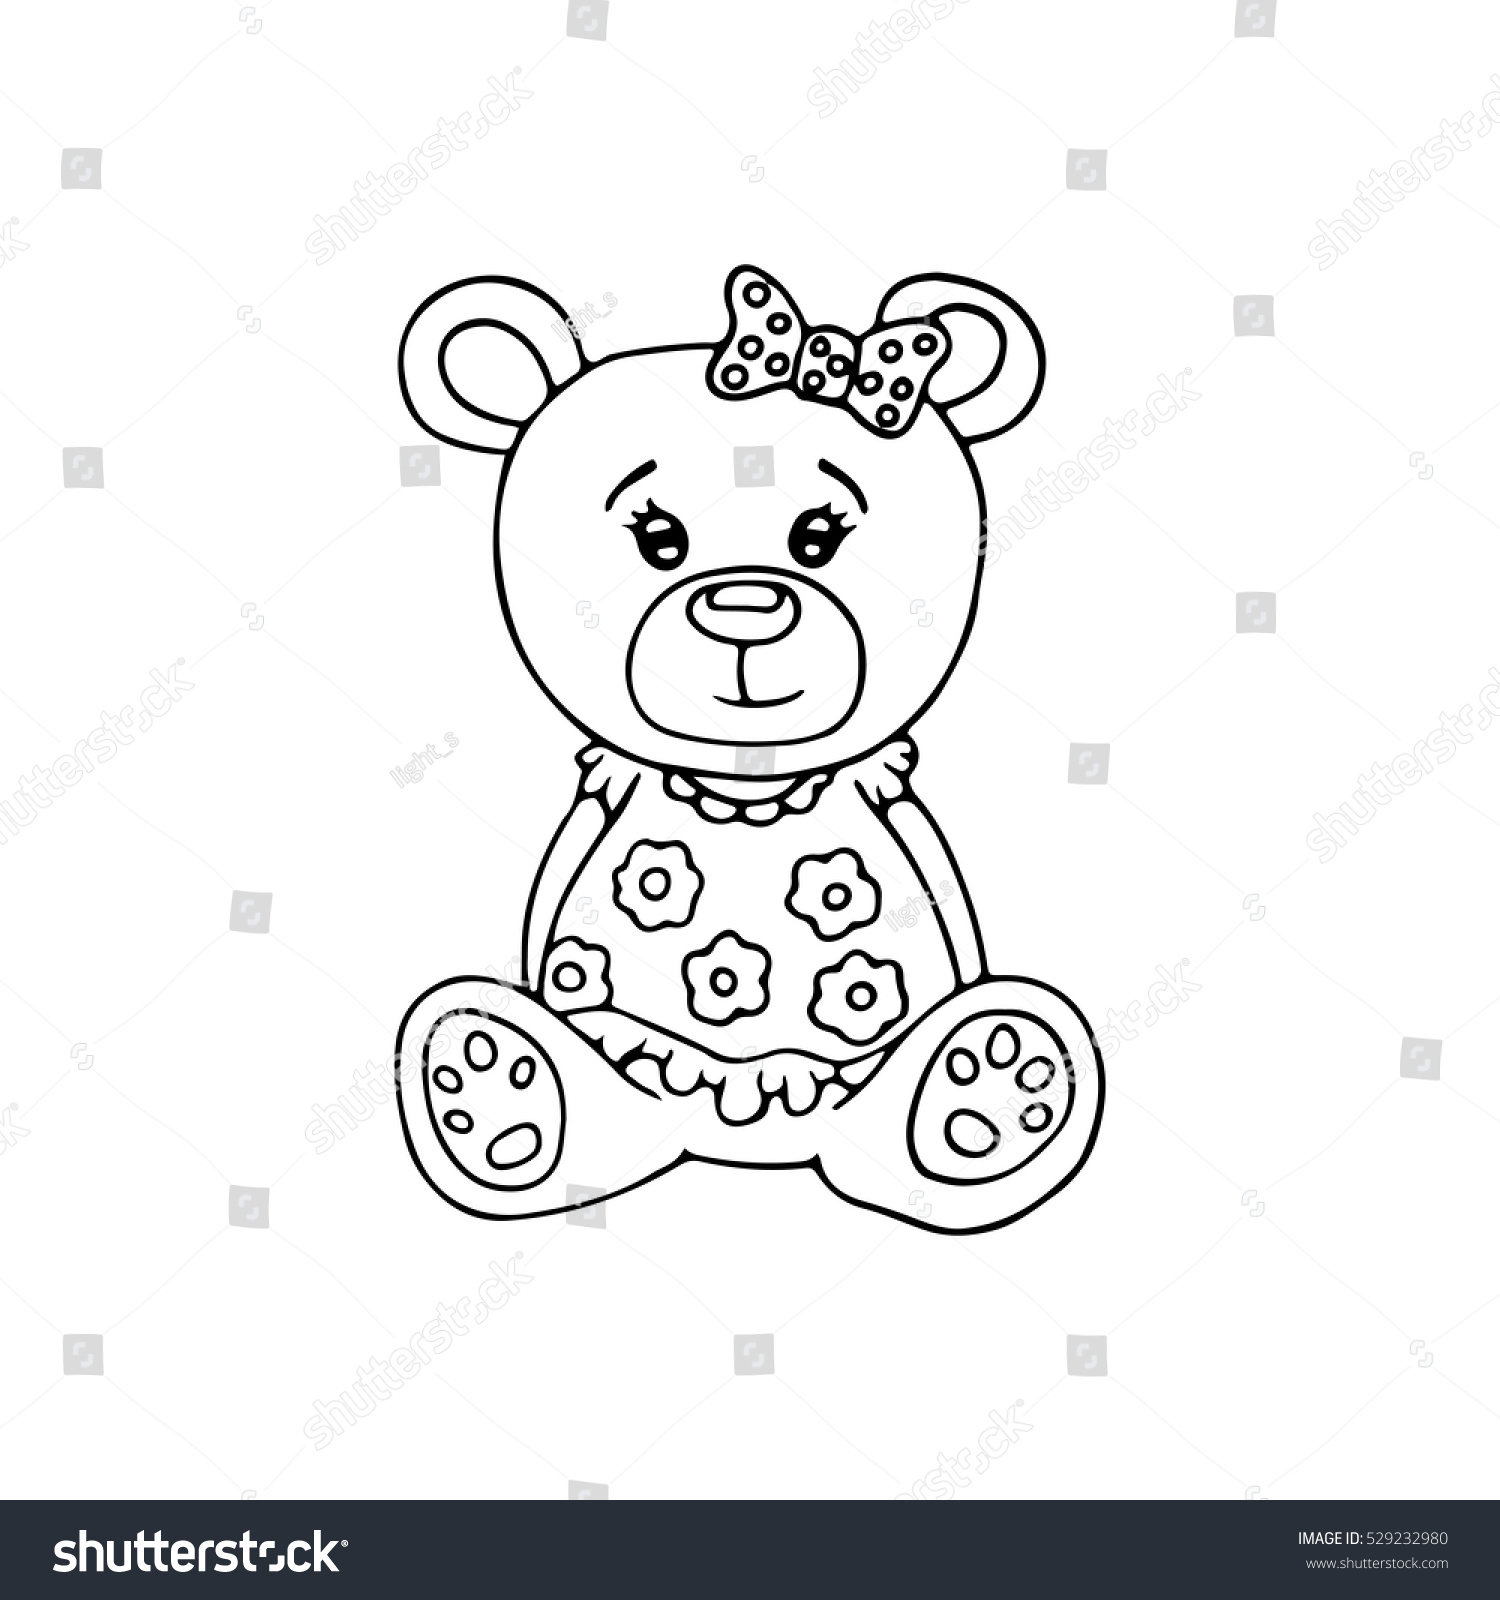 Outlined Cute Teddy Bear Coloring Page Stock Vector